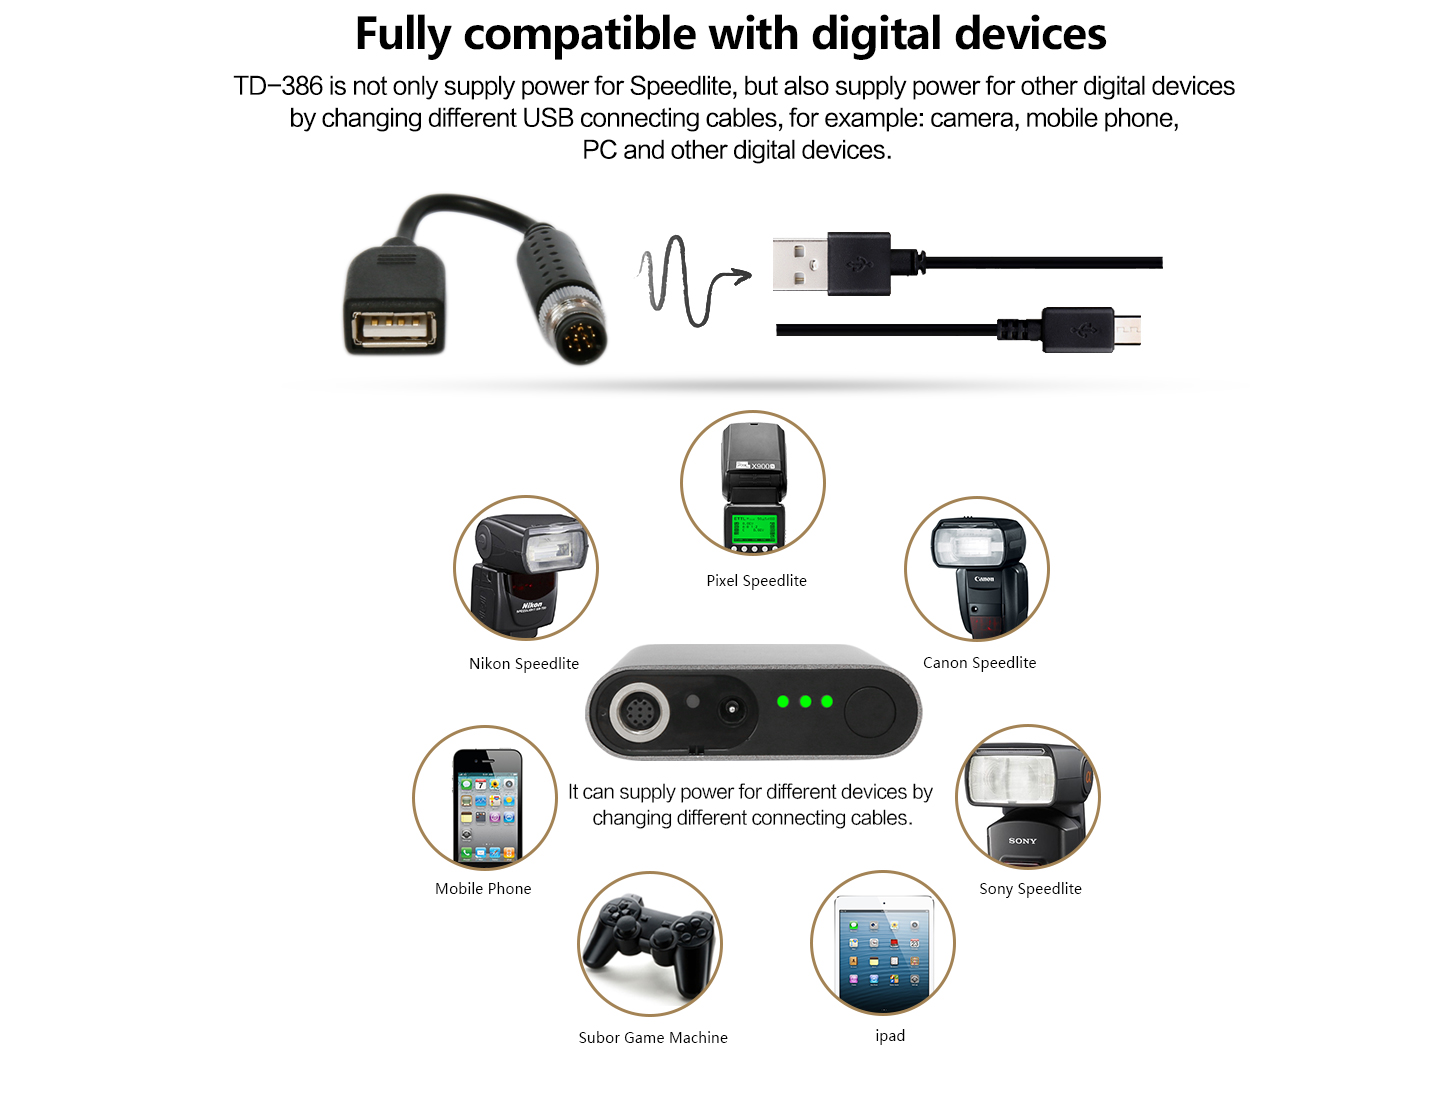 Fully compatible with digital devices